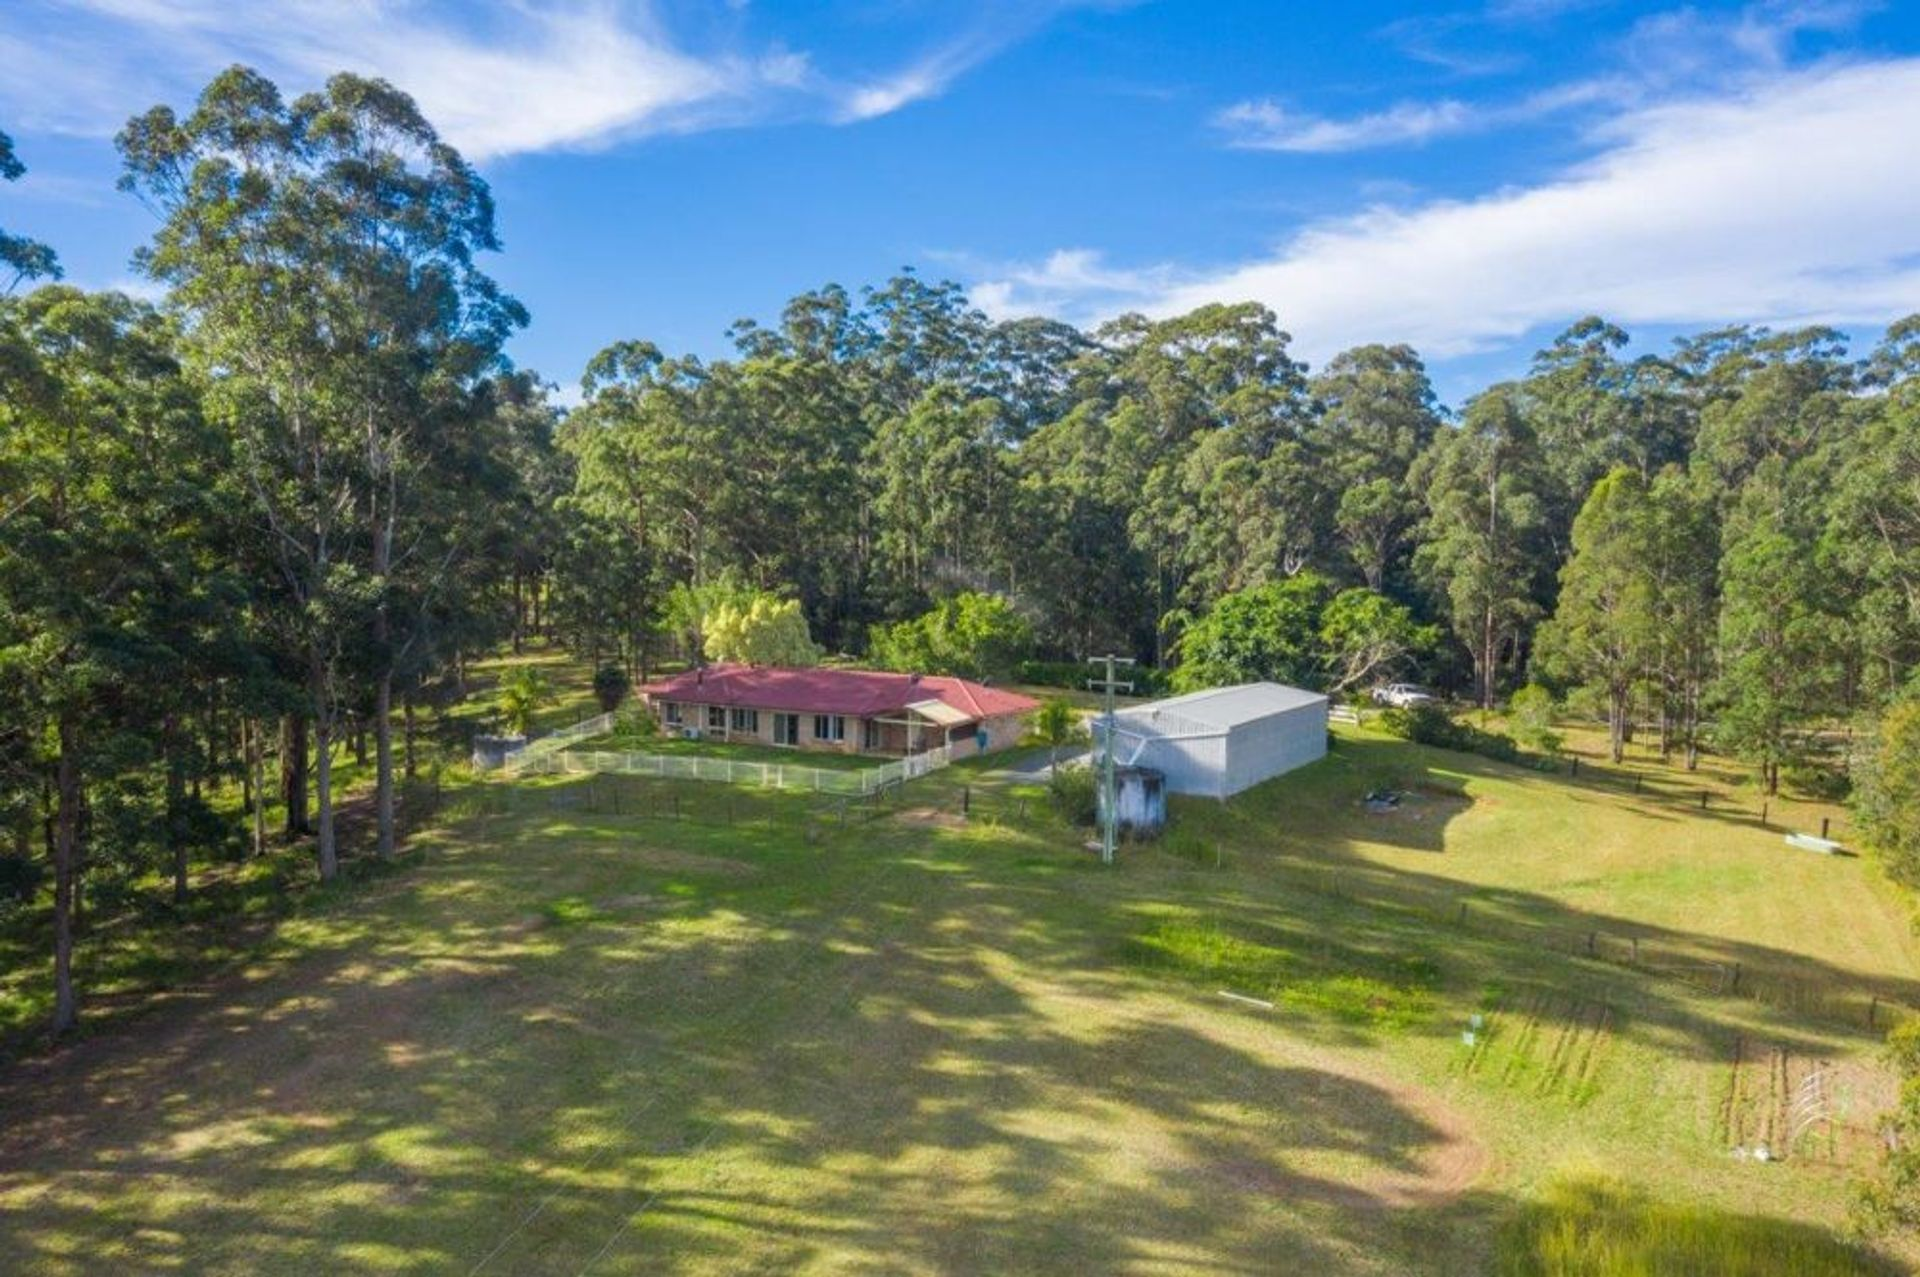 41 Little Bago Lane Herons Creek - NSW